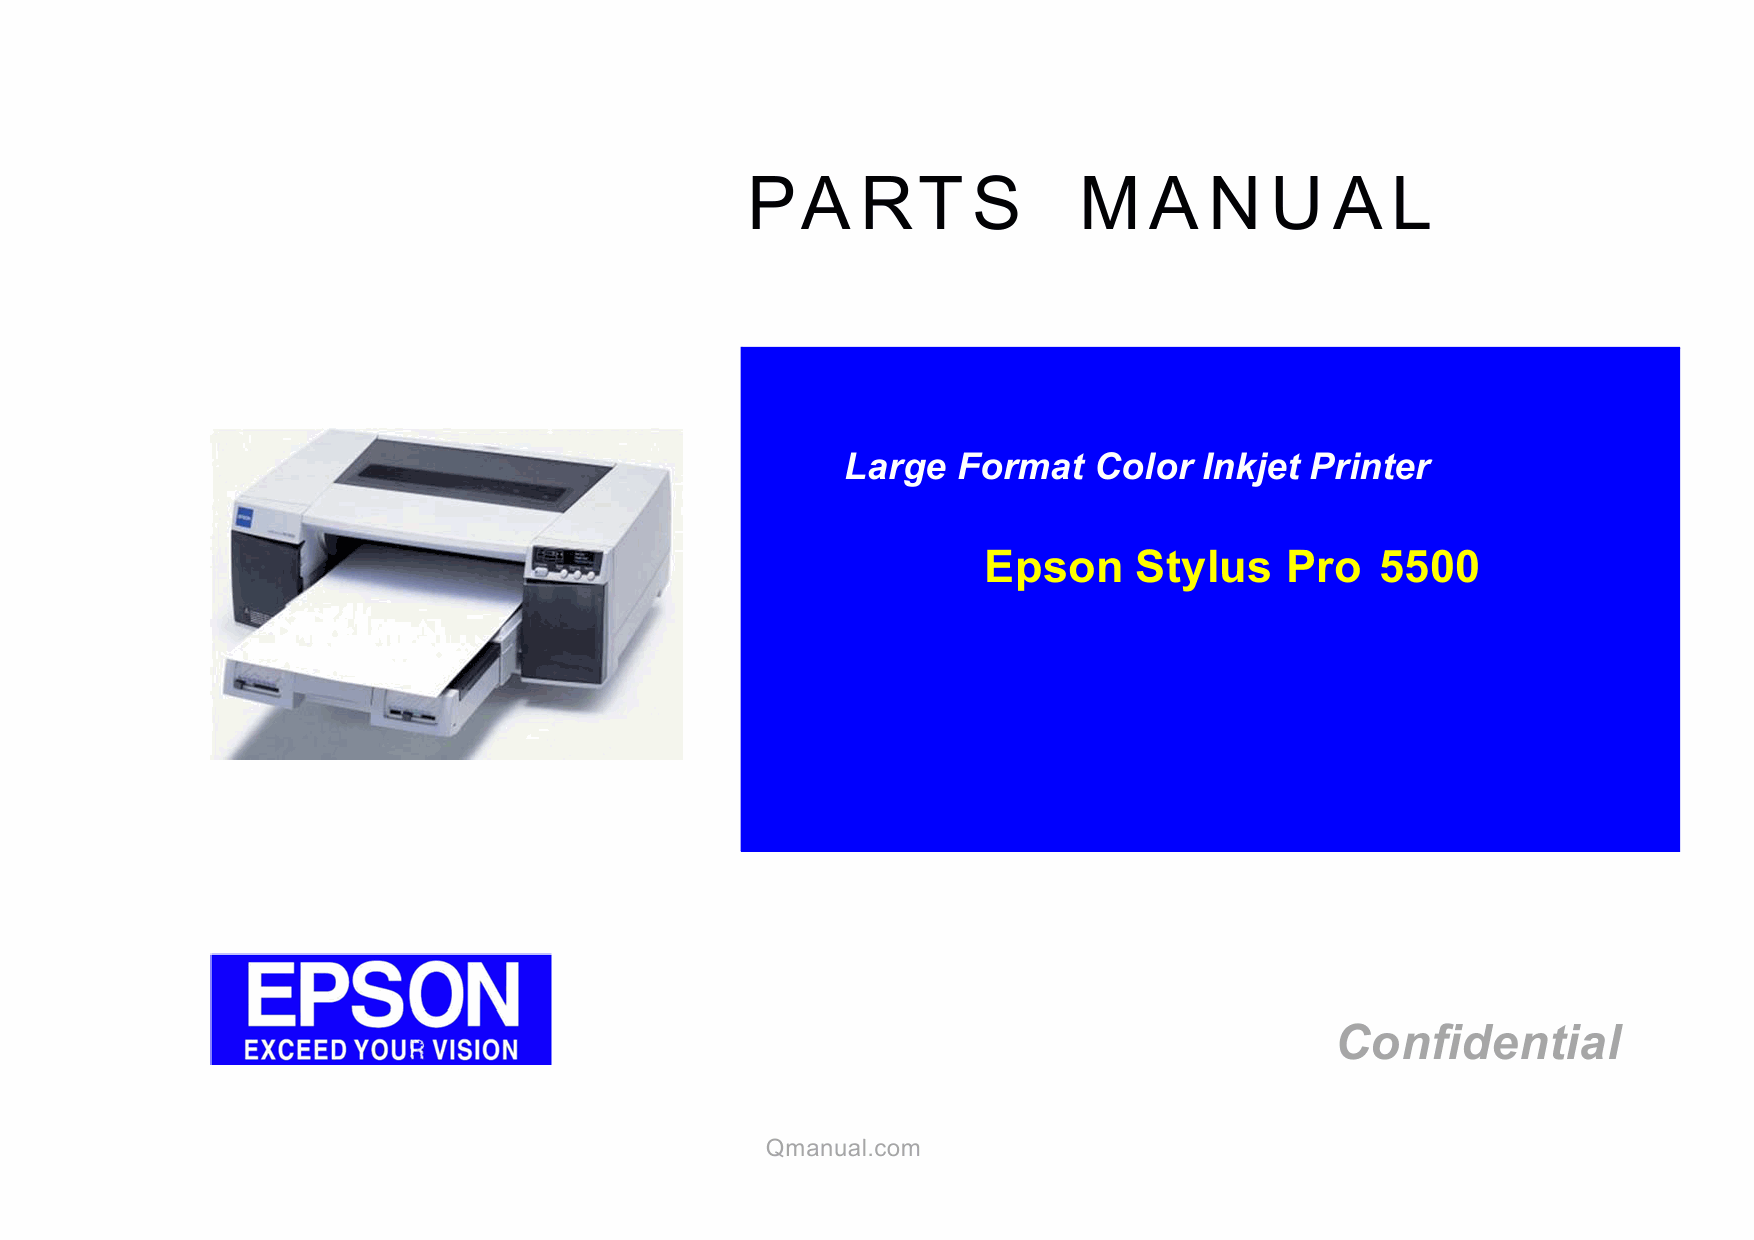 EPSON StylusPro 5500 Parts Manual-1